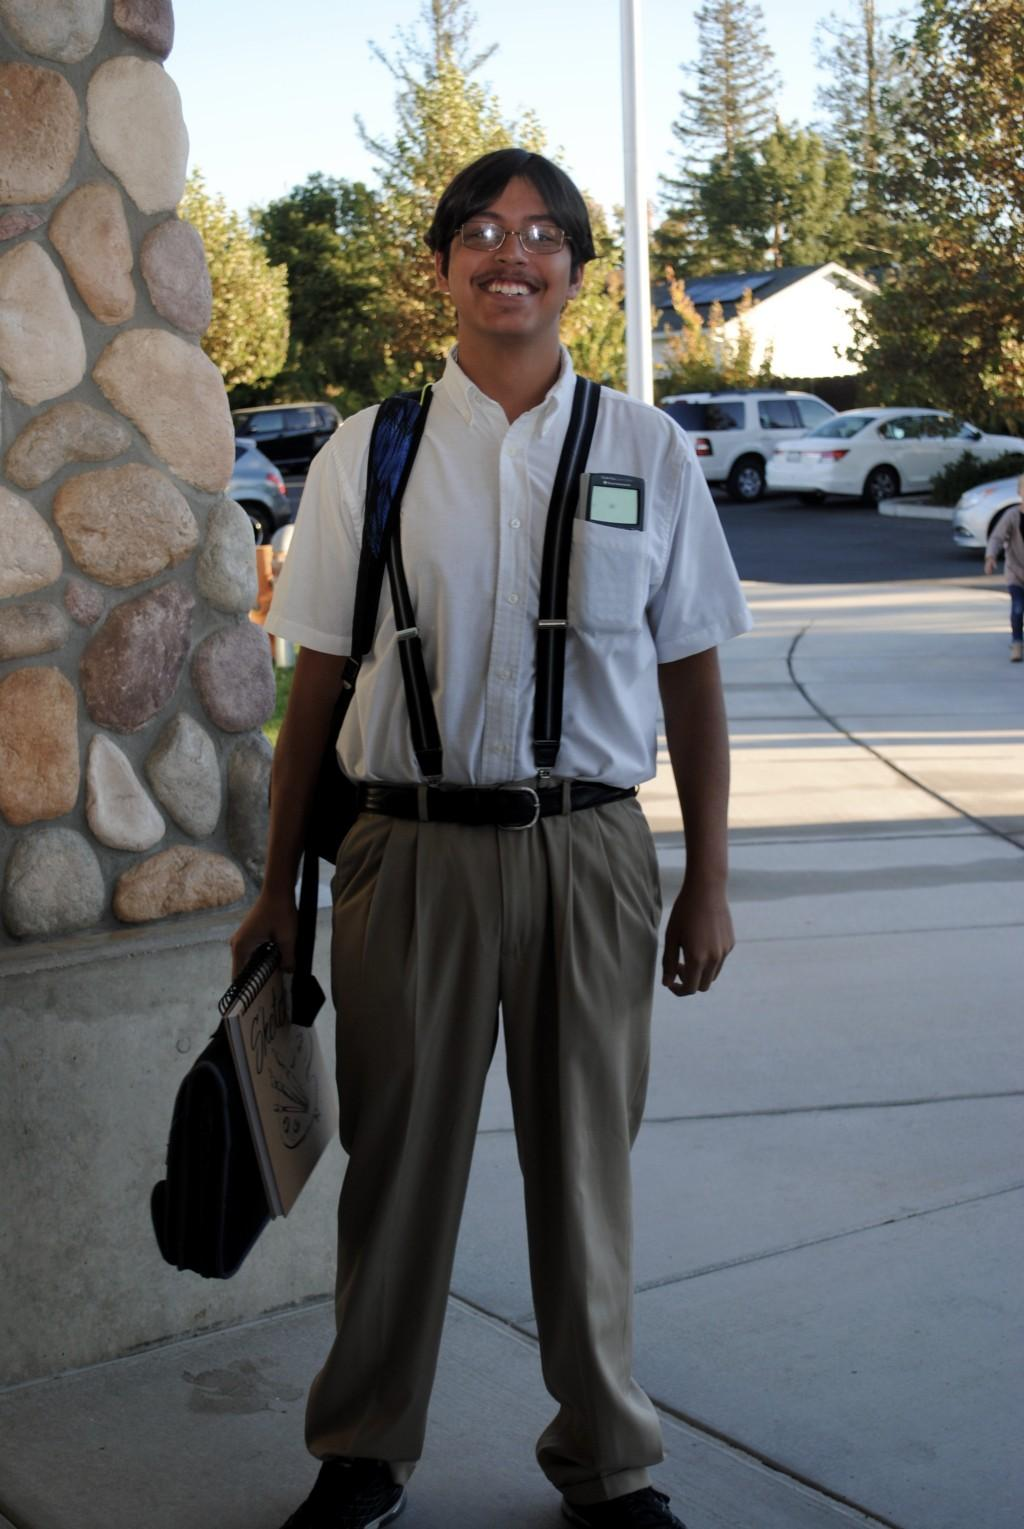 Student dressed up for nerd day.